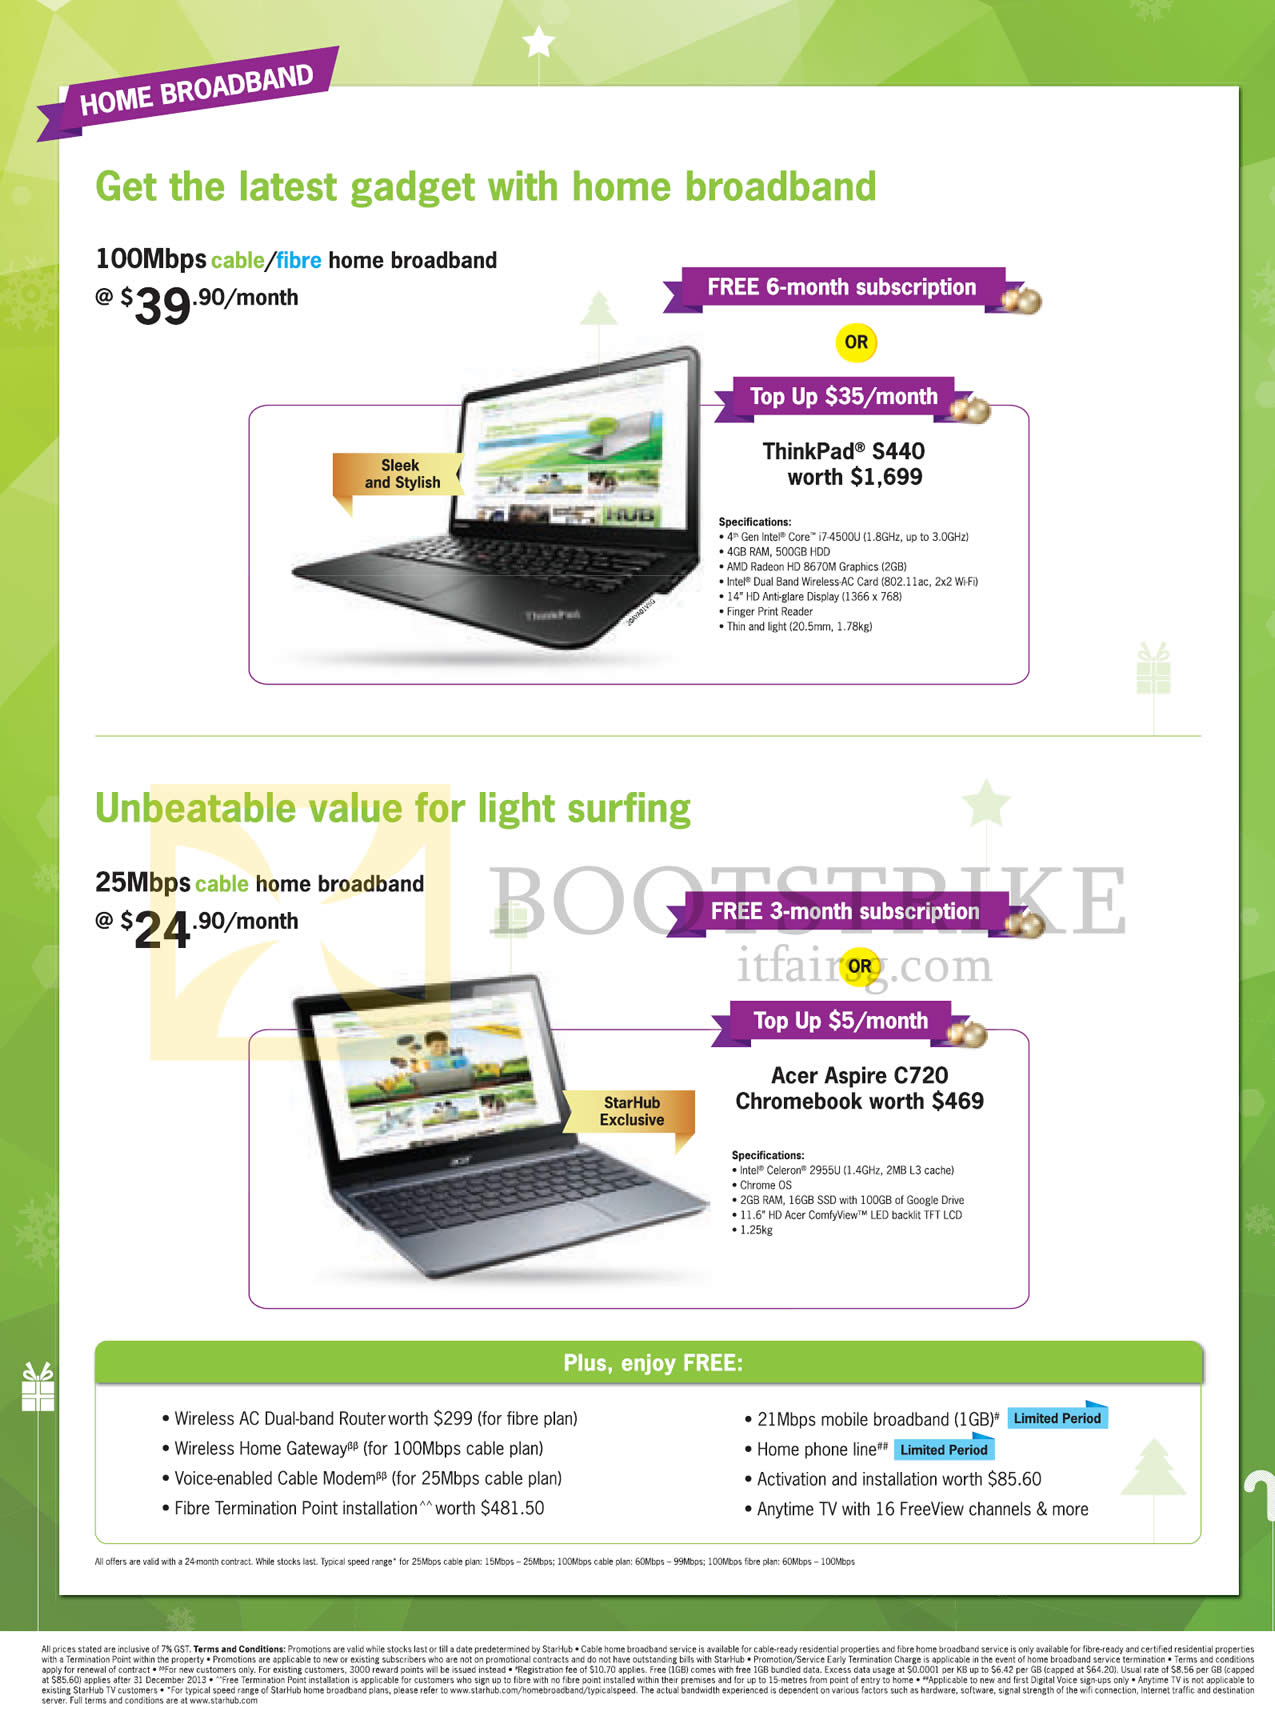 Notebook, 25Mbps 24.90 Free 3 Month Or Acer Aspire C720 Chromebook